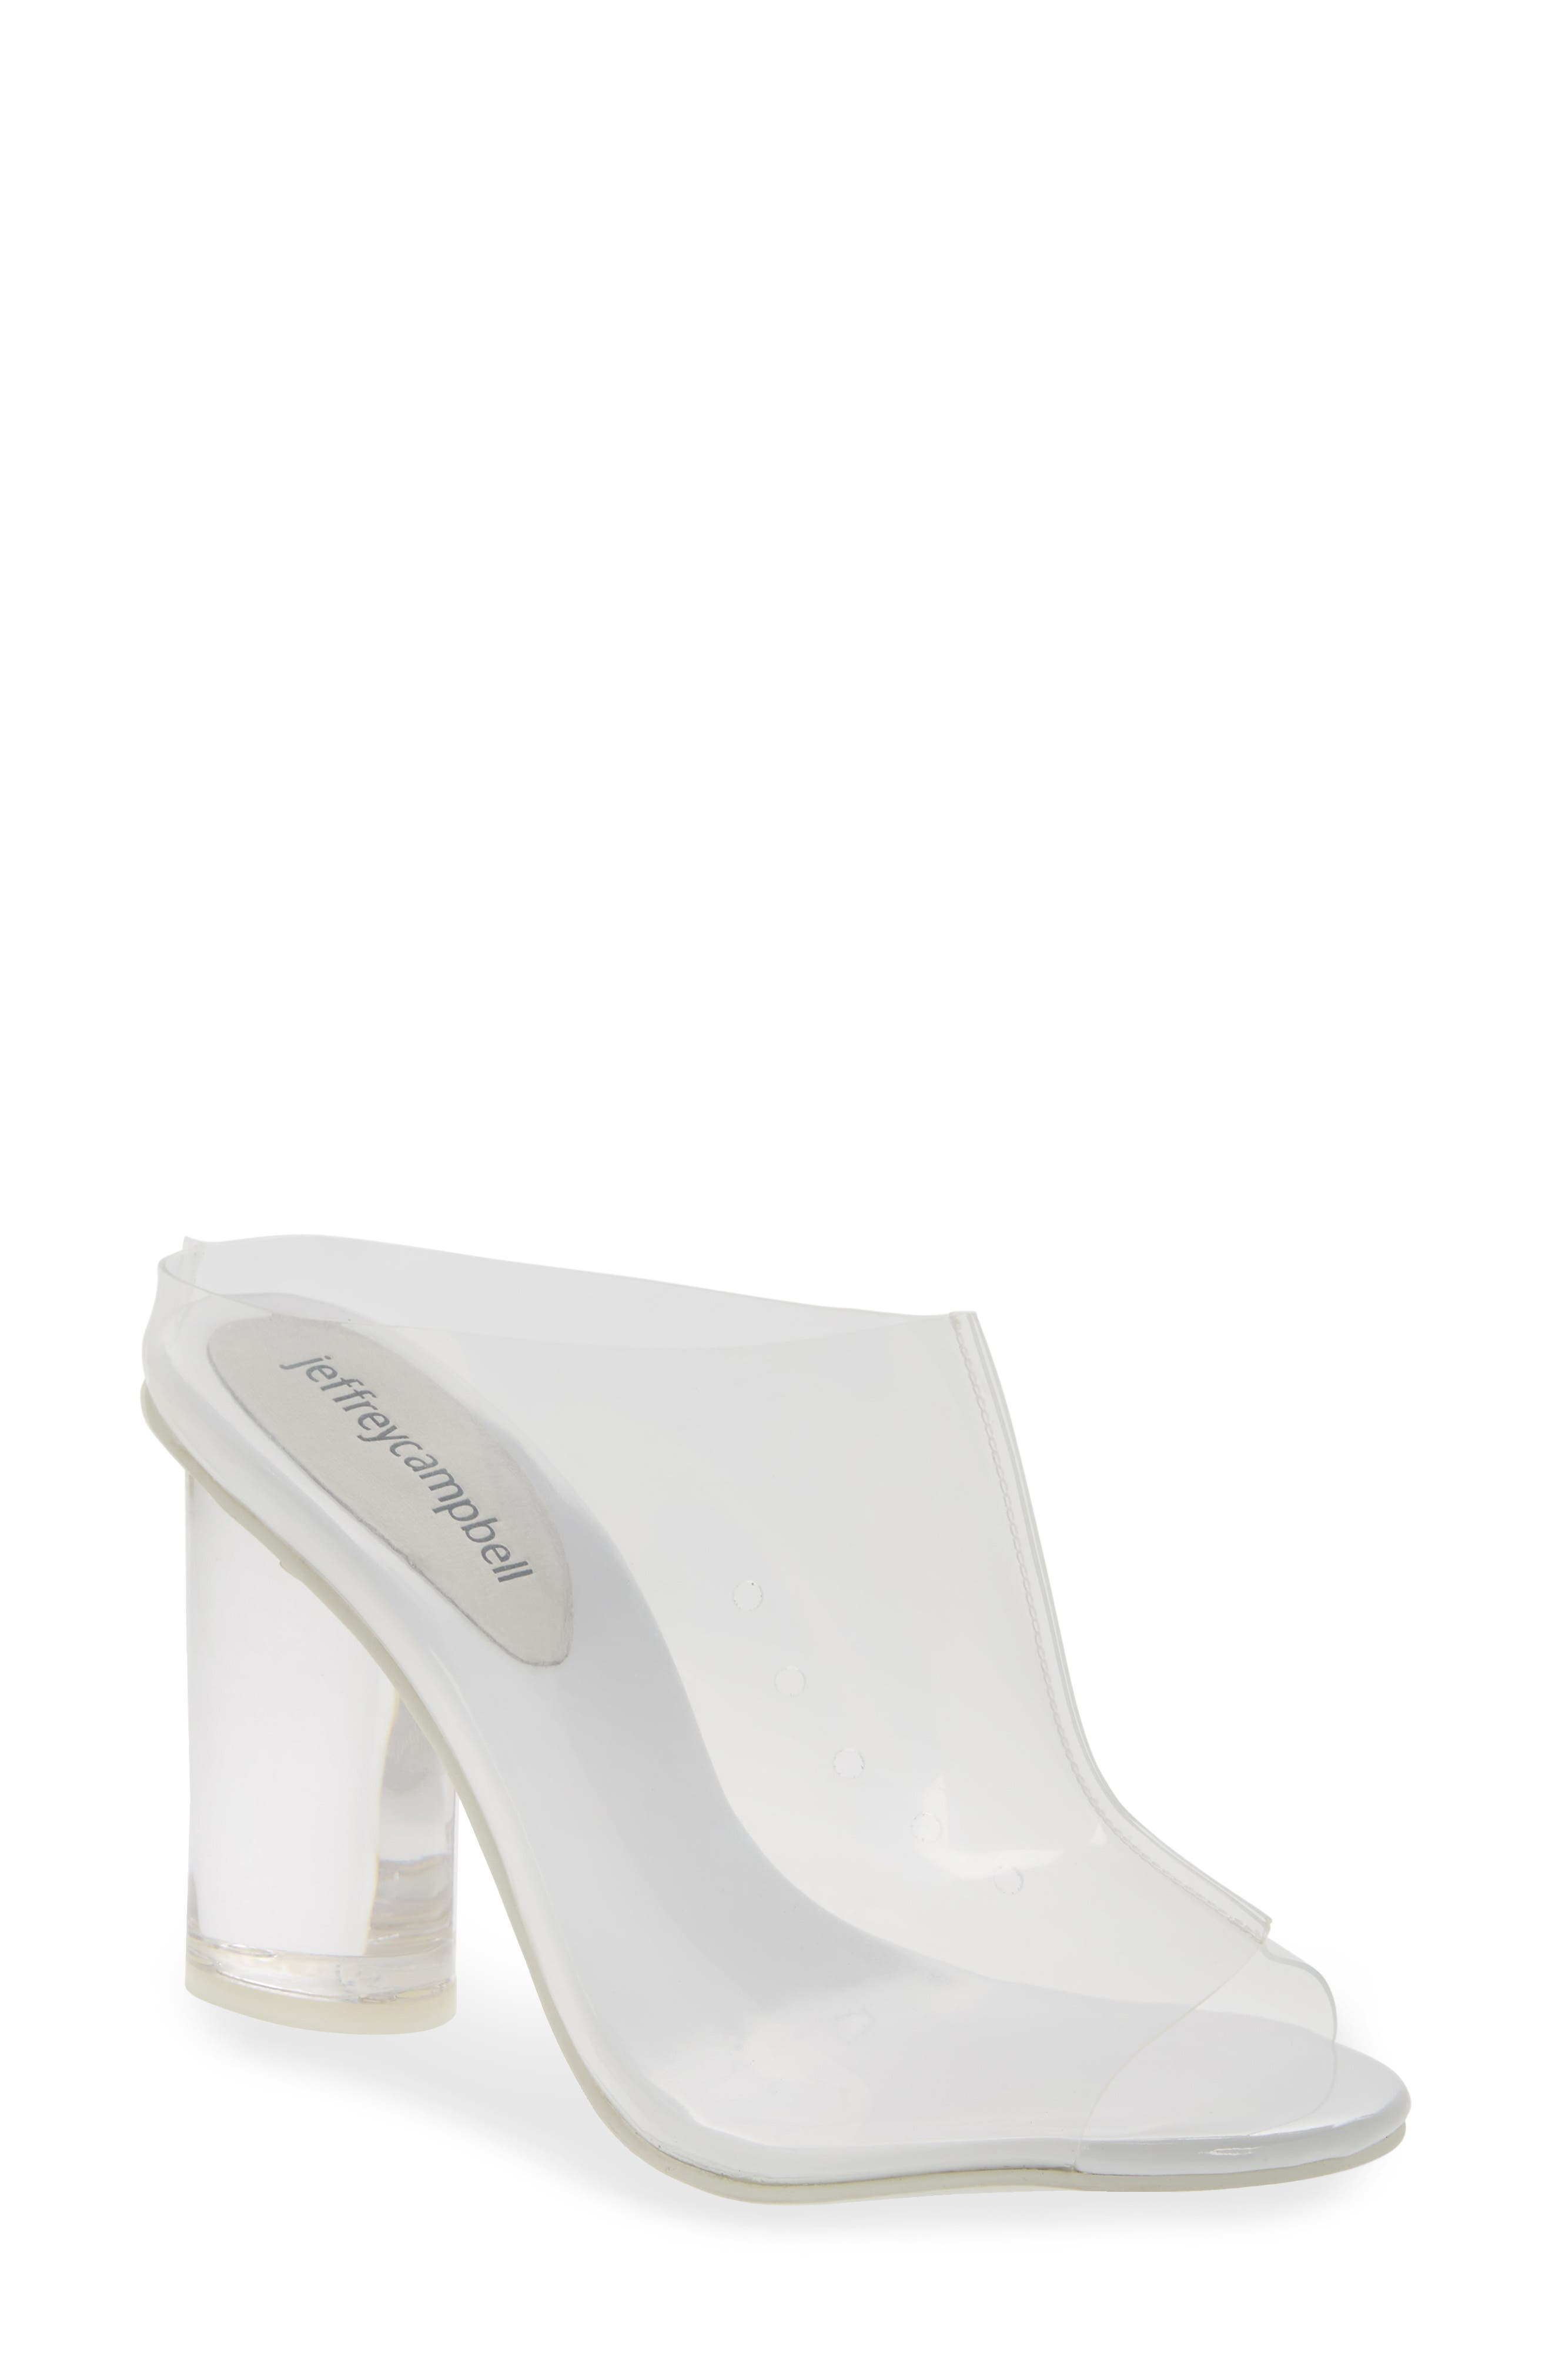 Divinity Column Heel Mule,                         Main,                         color, CLEAR